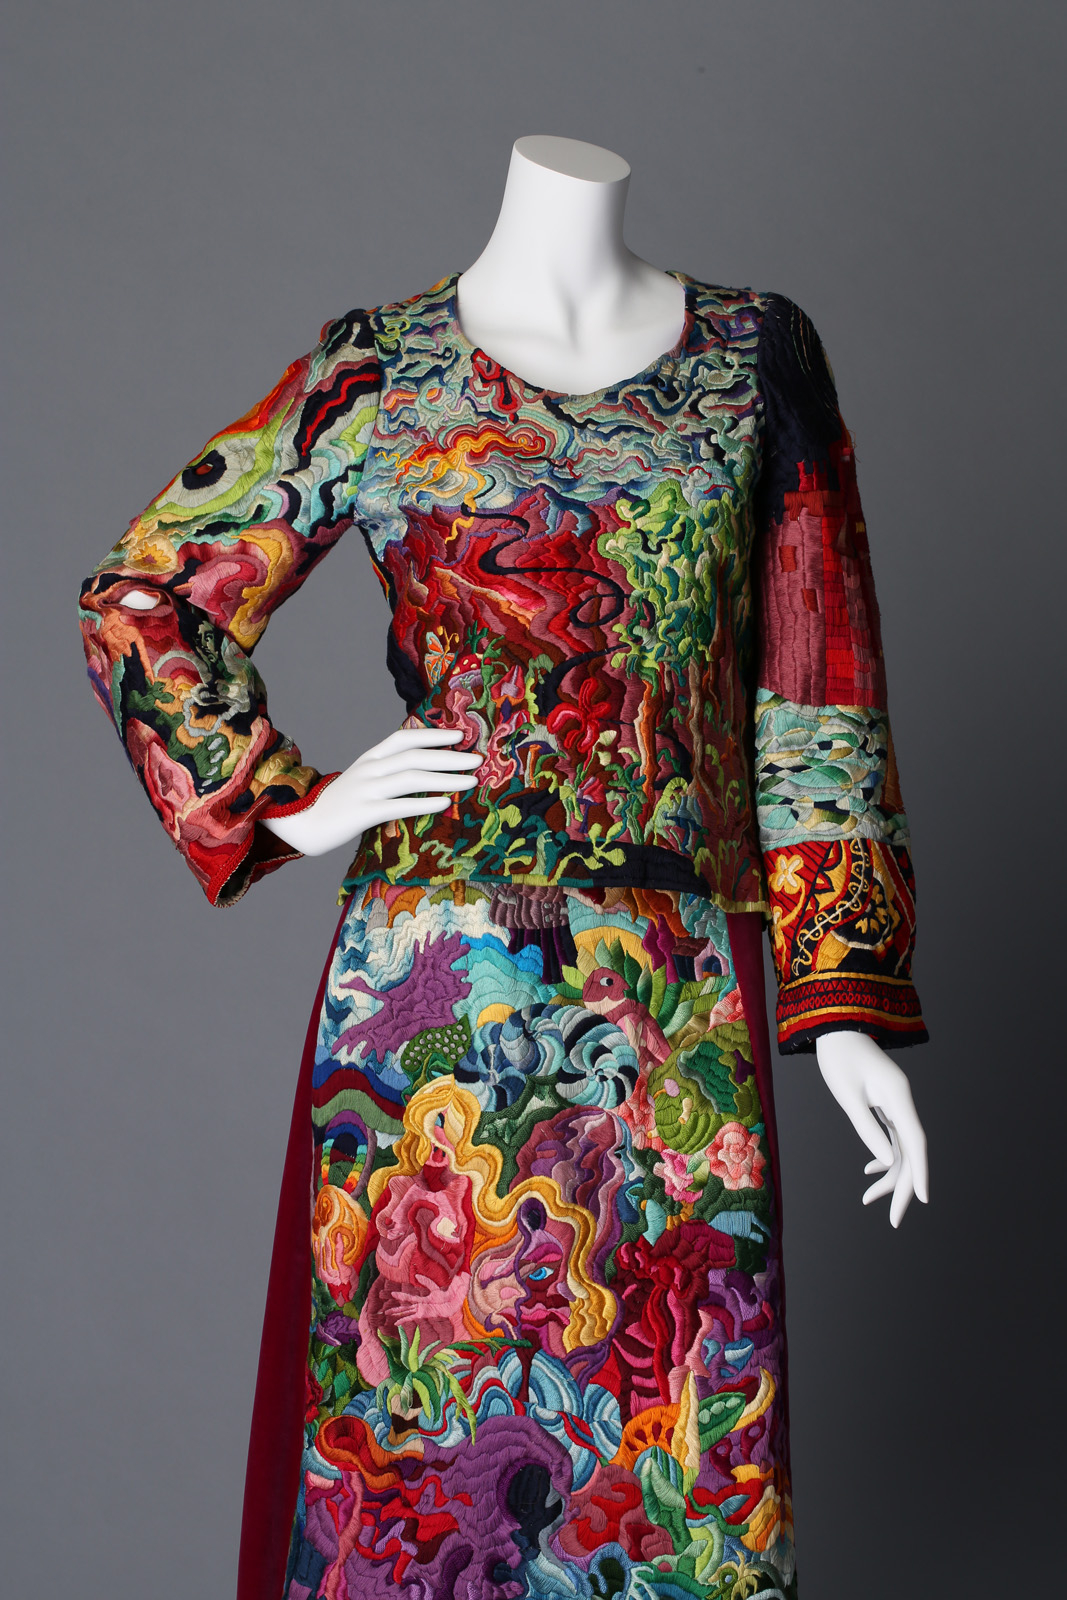 Mary Ann Schildknecht: Embroidered Skirt and Top Ensemble, c. 1972